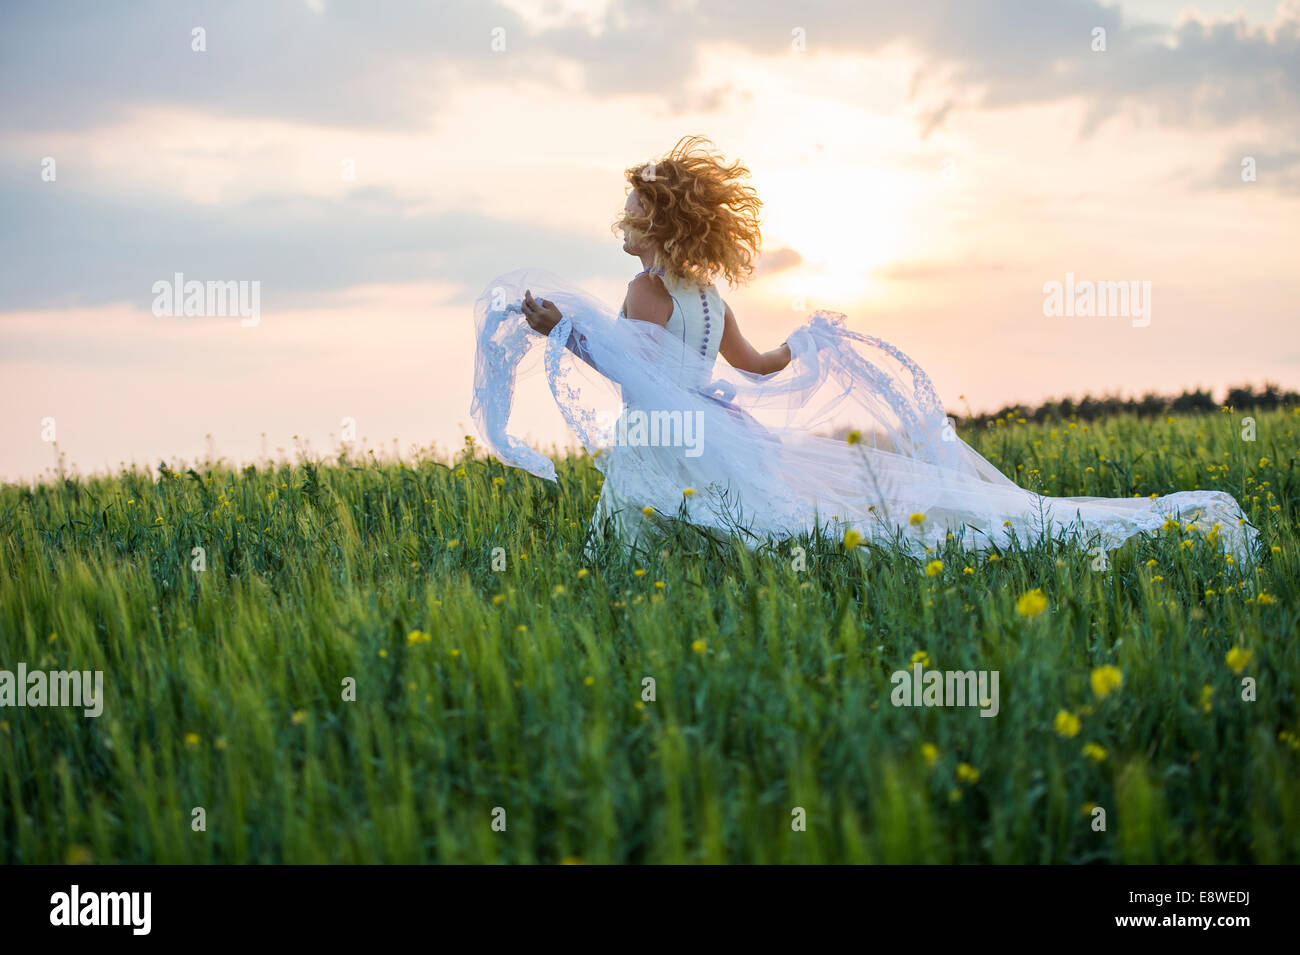 The runaway bride - a young woman girl in a wedding dress running fleeing in a field of yellow flowers evening UK Stock Photo